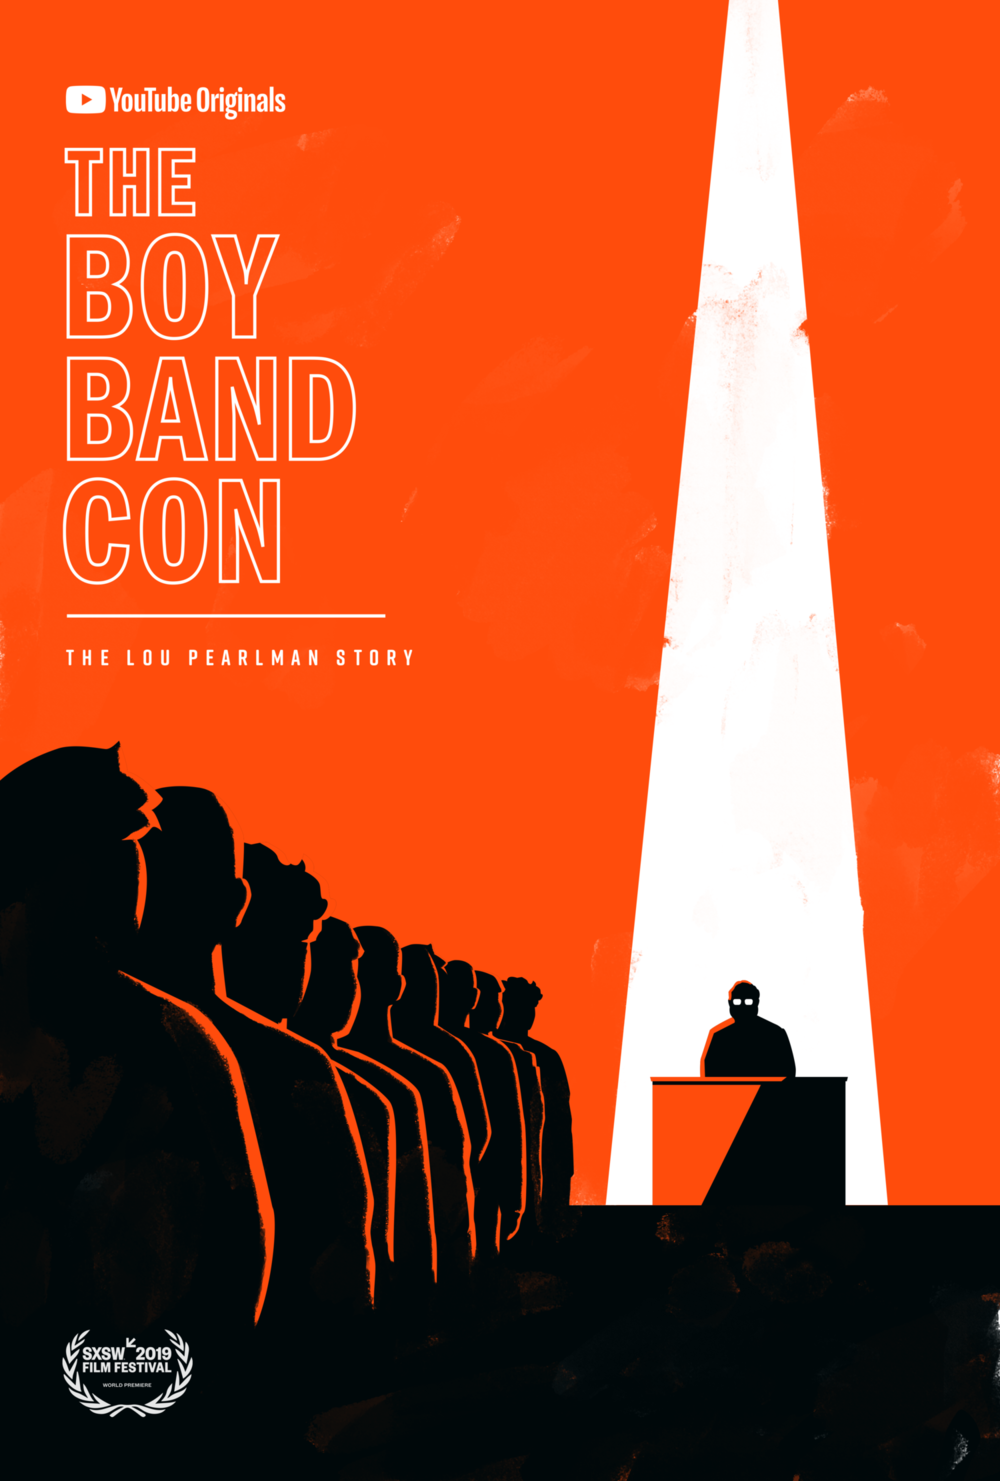 The Boy Band Con – Producer, Director of Photography, Colorist